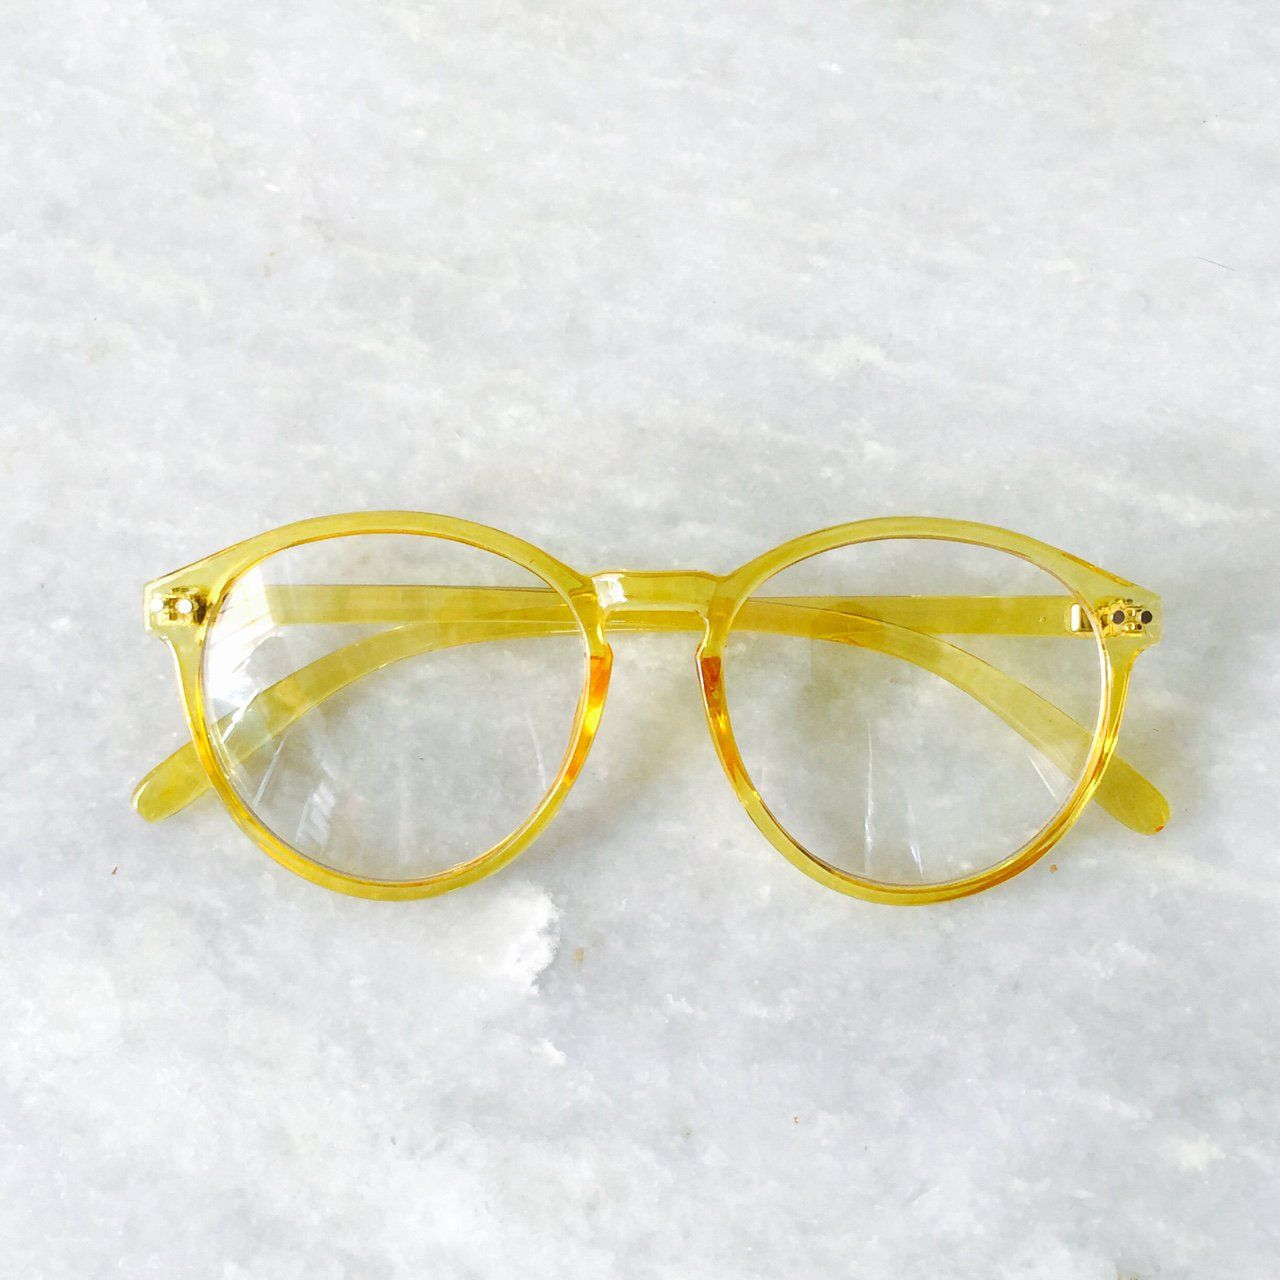 0e9ed1fa768f Retro Yellow Pantos Frame Clear Lens Glasses ⌛ Yellow Frame • Pantos Style  • Replaceable Lens • Retro Fit • Denim shorts • Basic Tee • Vans Shoes •  SENT ...